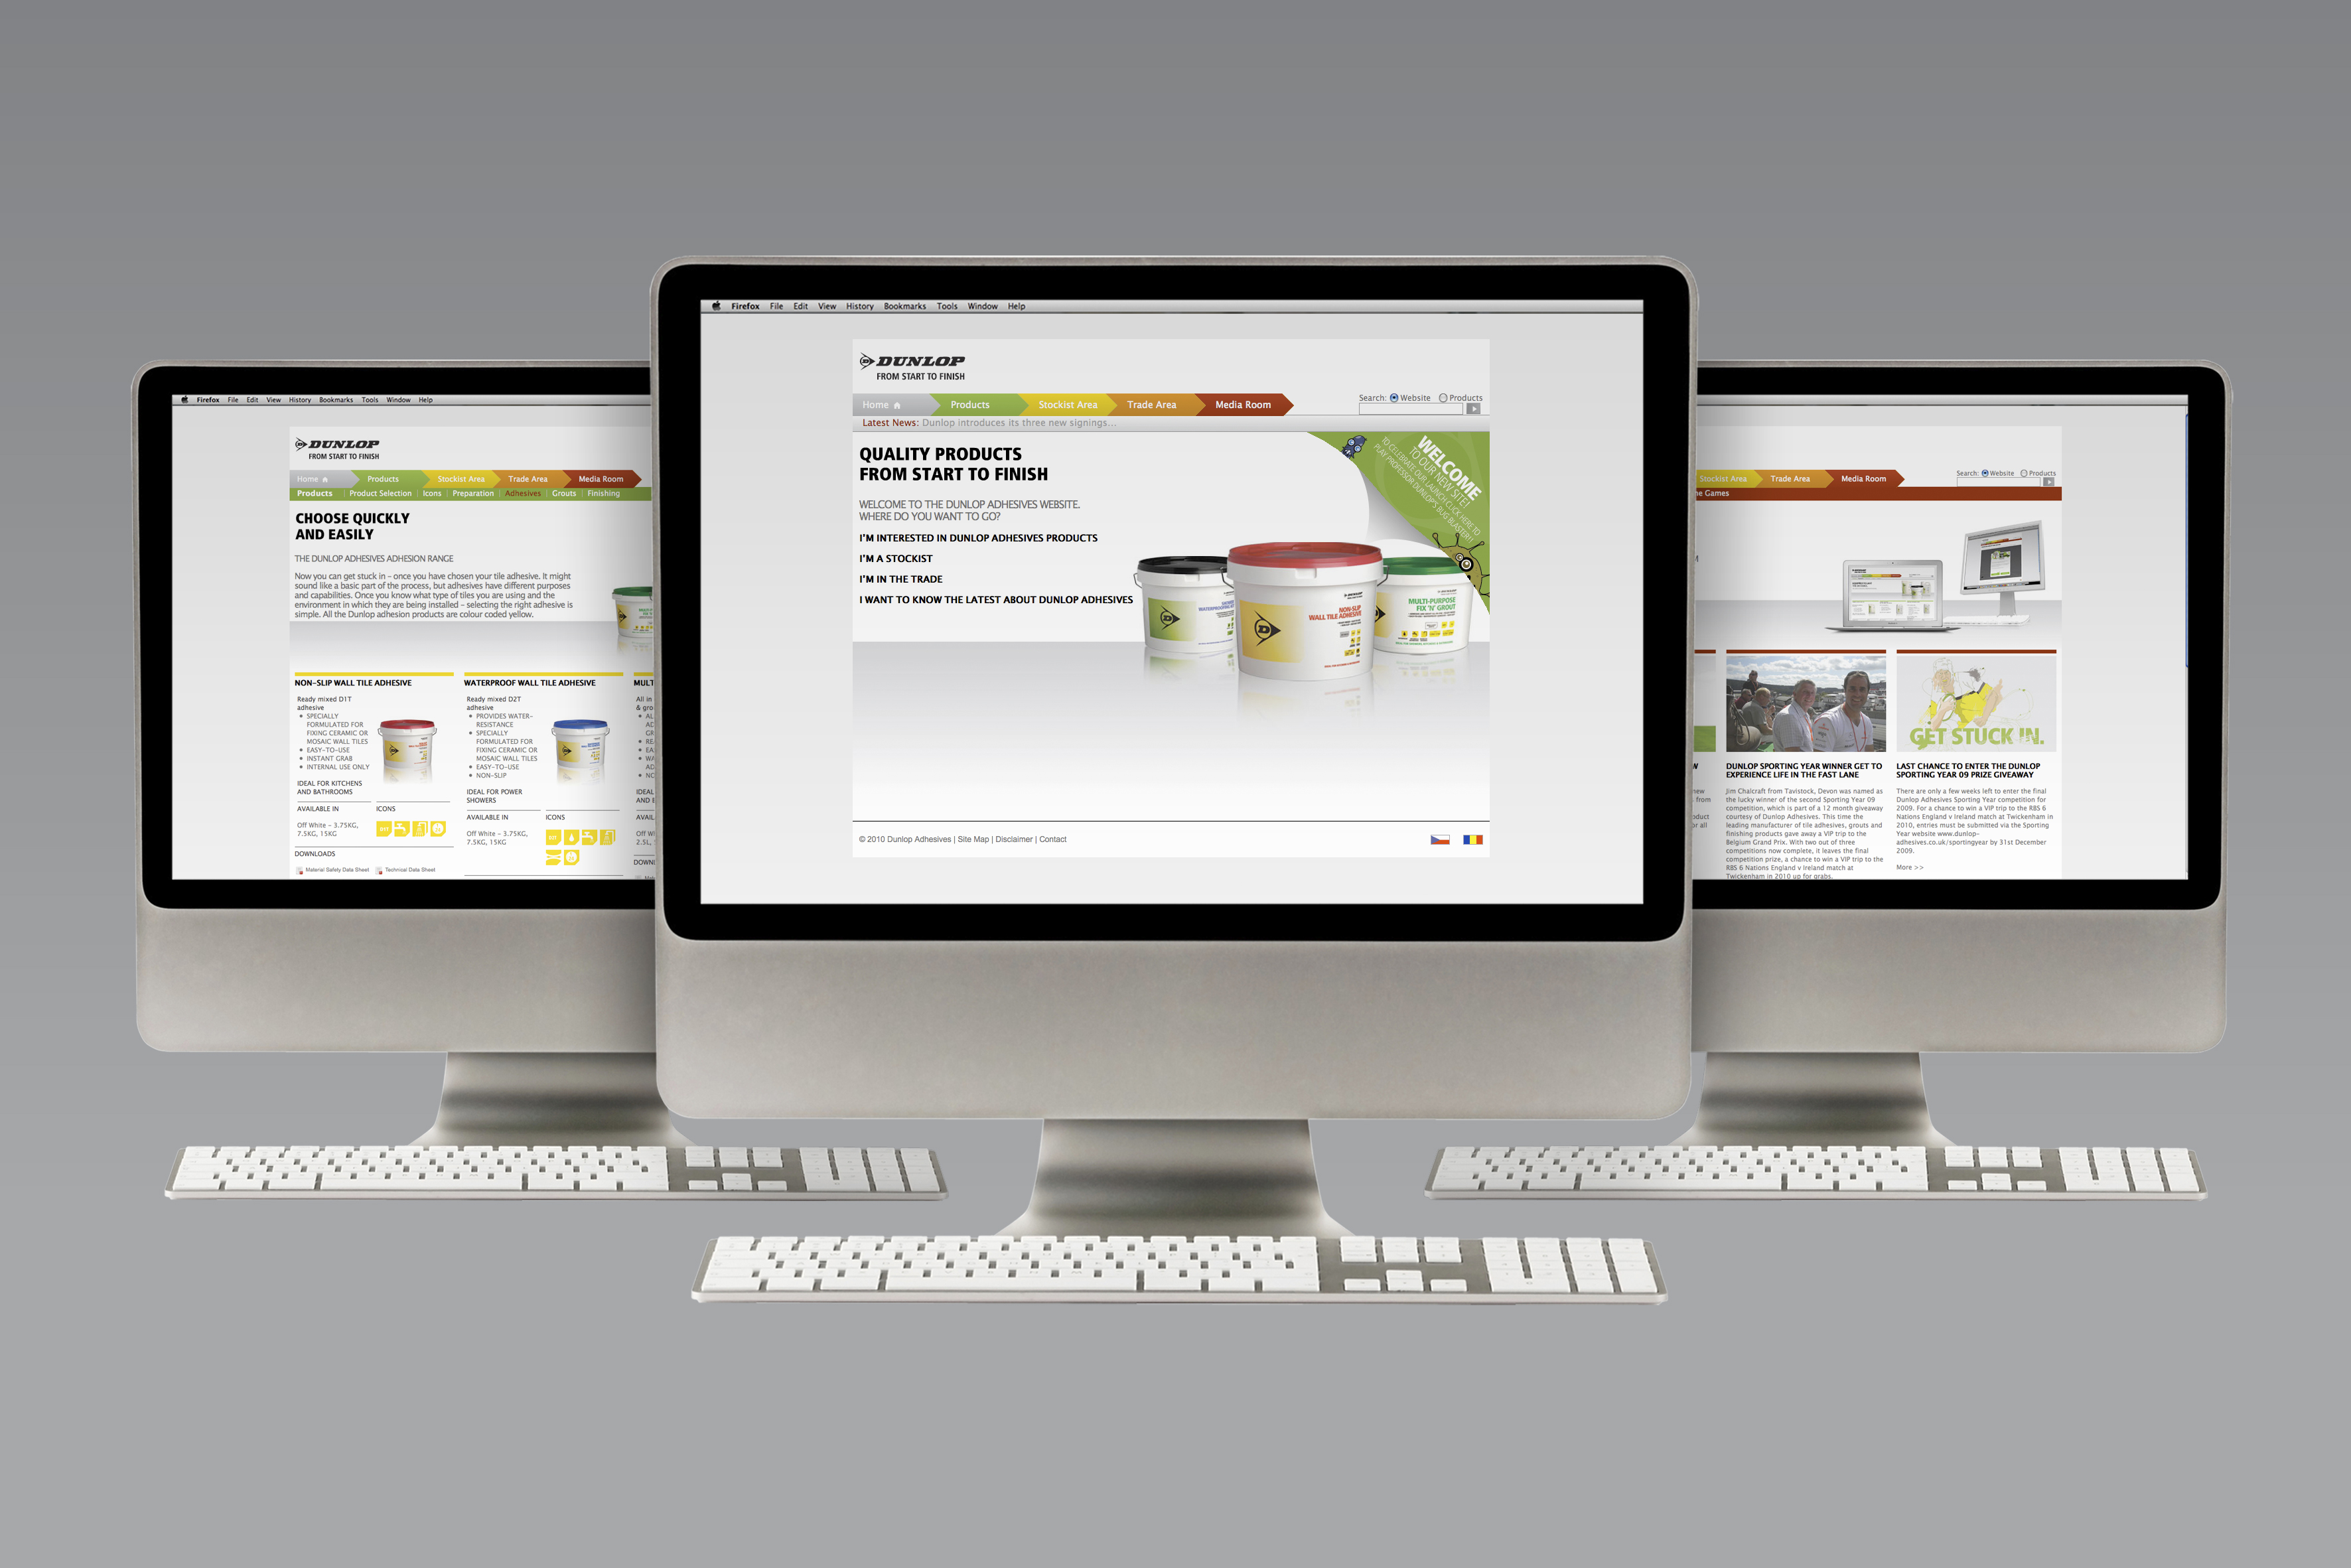 Dunlop Adhesives new website looks set to help and support end users with their own dedicated section